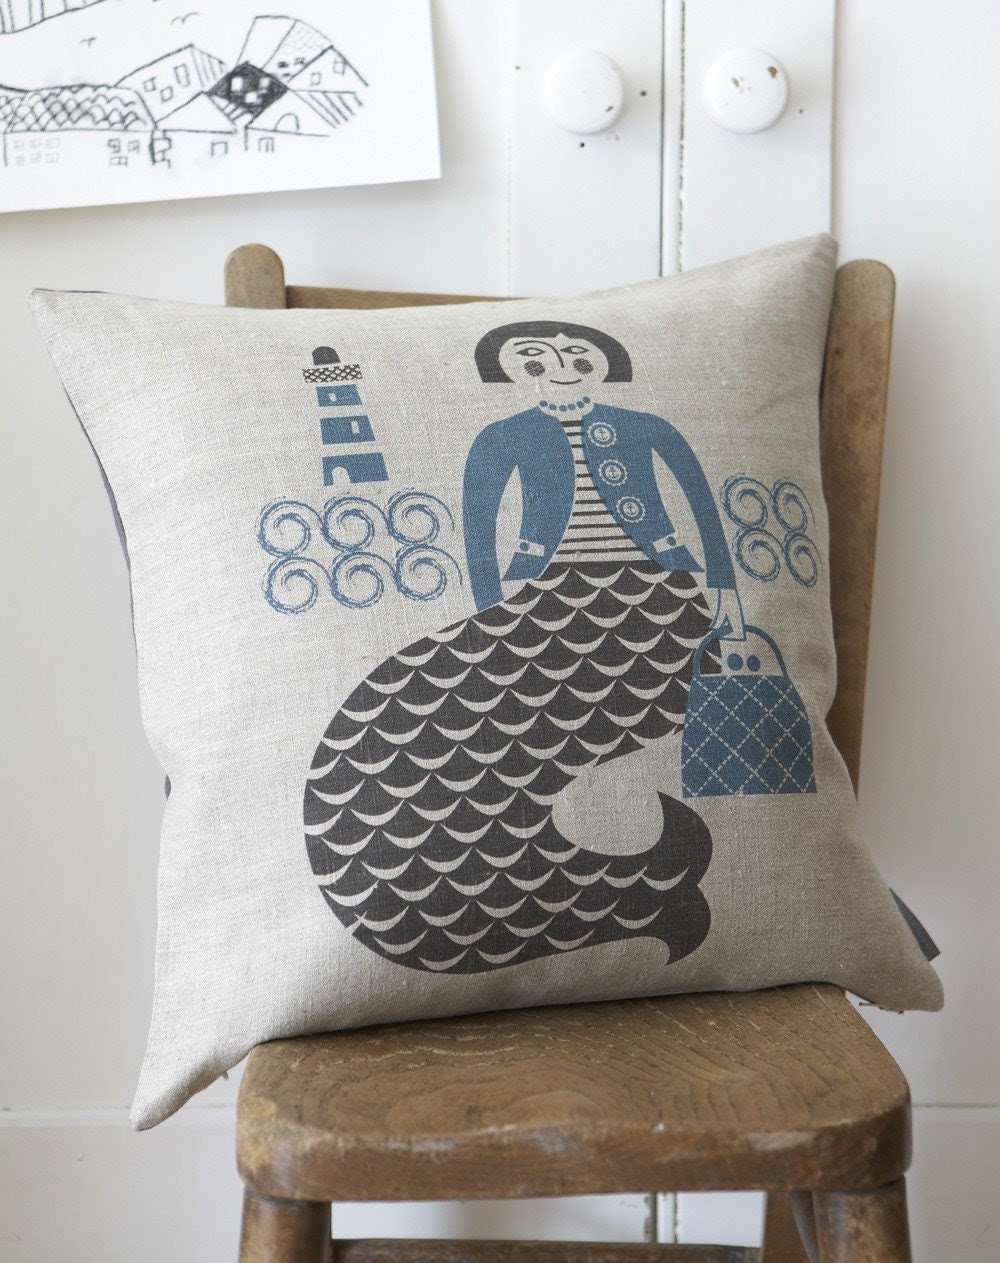 Mermaid cushion in blue and grey